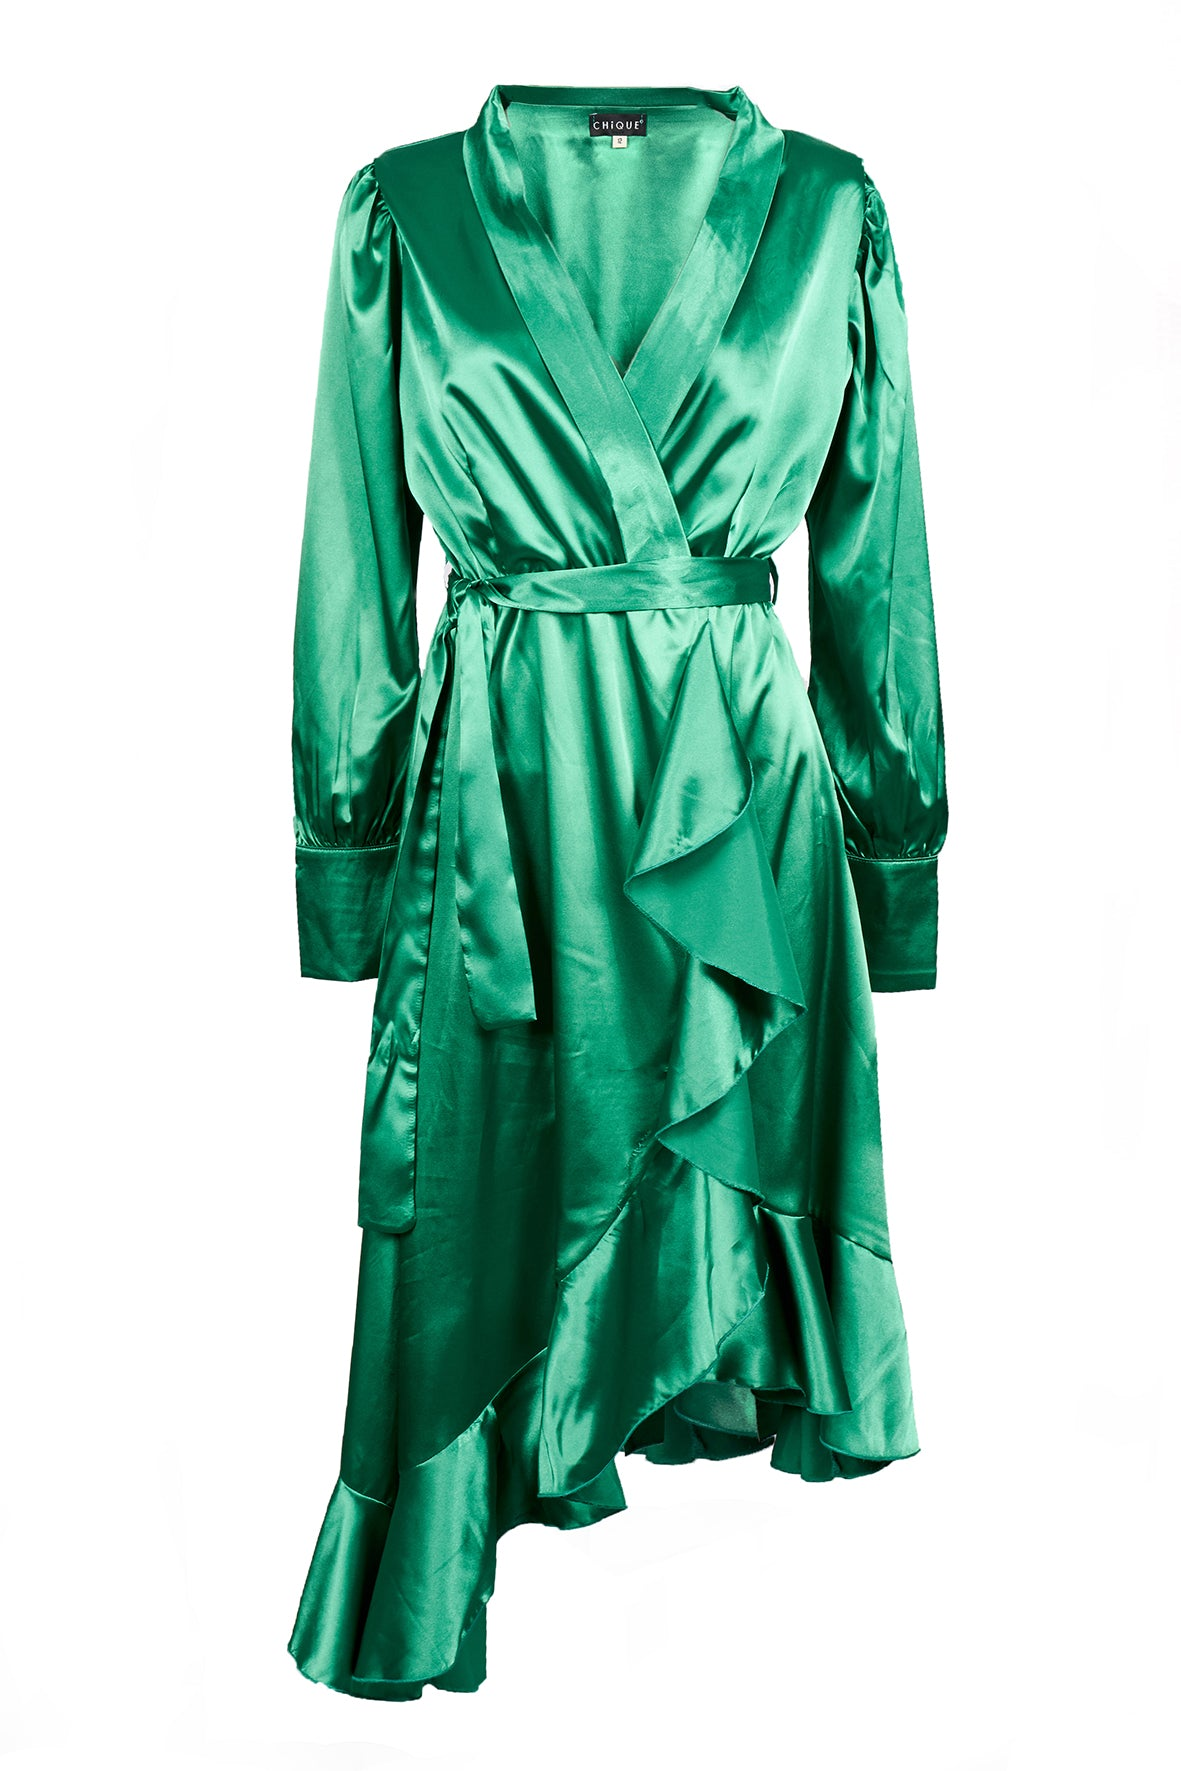 WRAP OVER RUFFLE DRESS GREEN